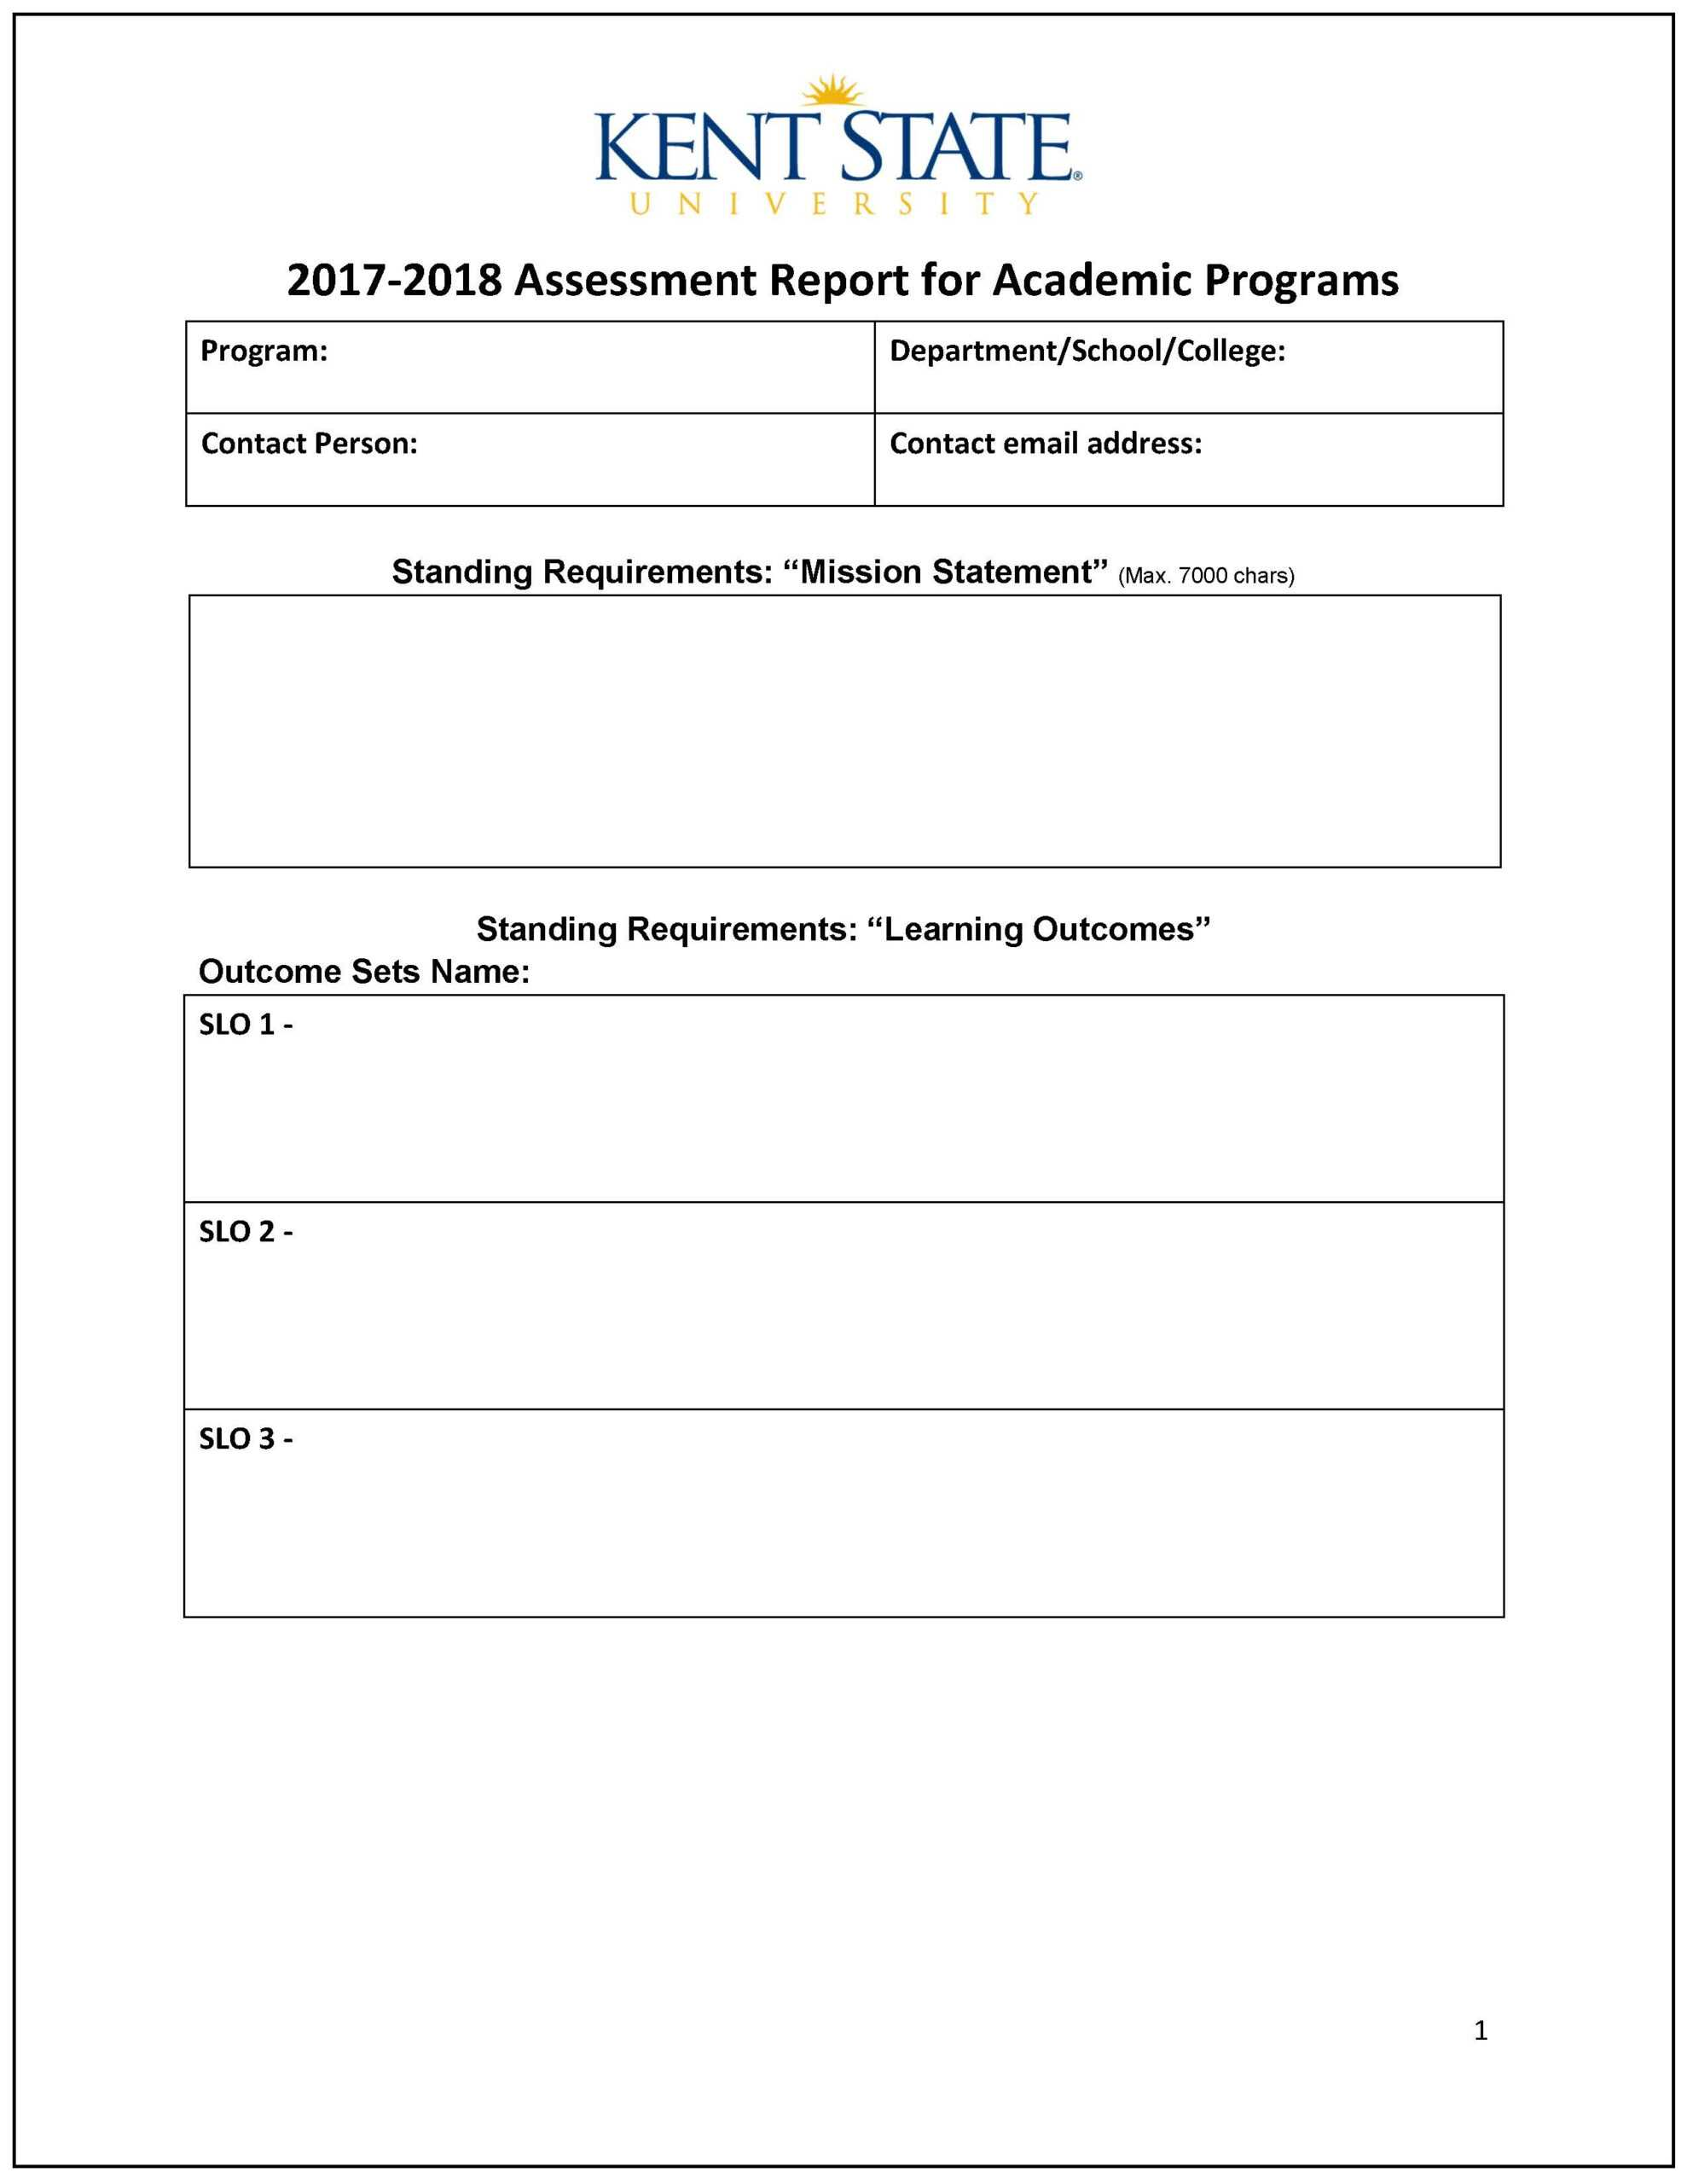 Assessment Report - Word Template | Accreditation Within State Report Template